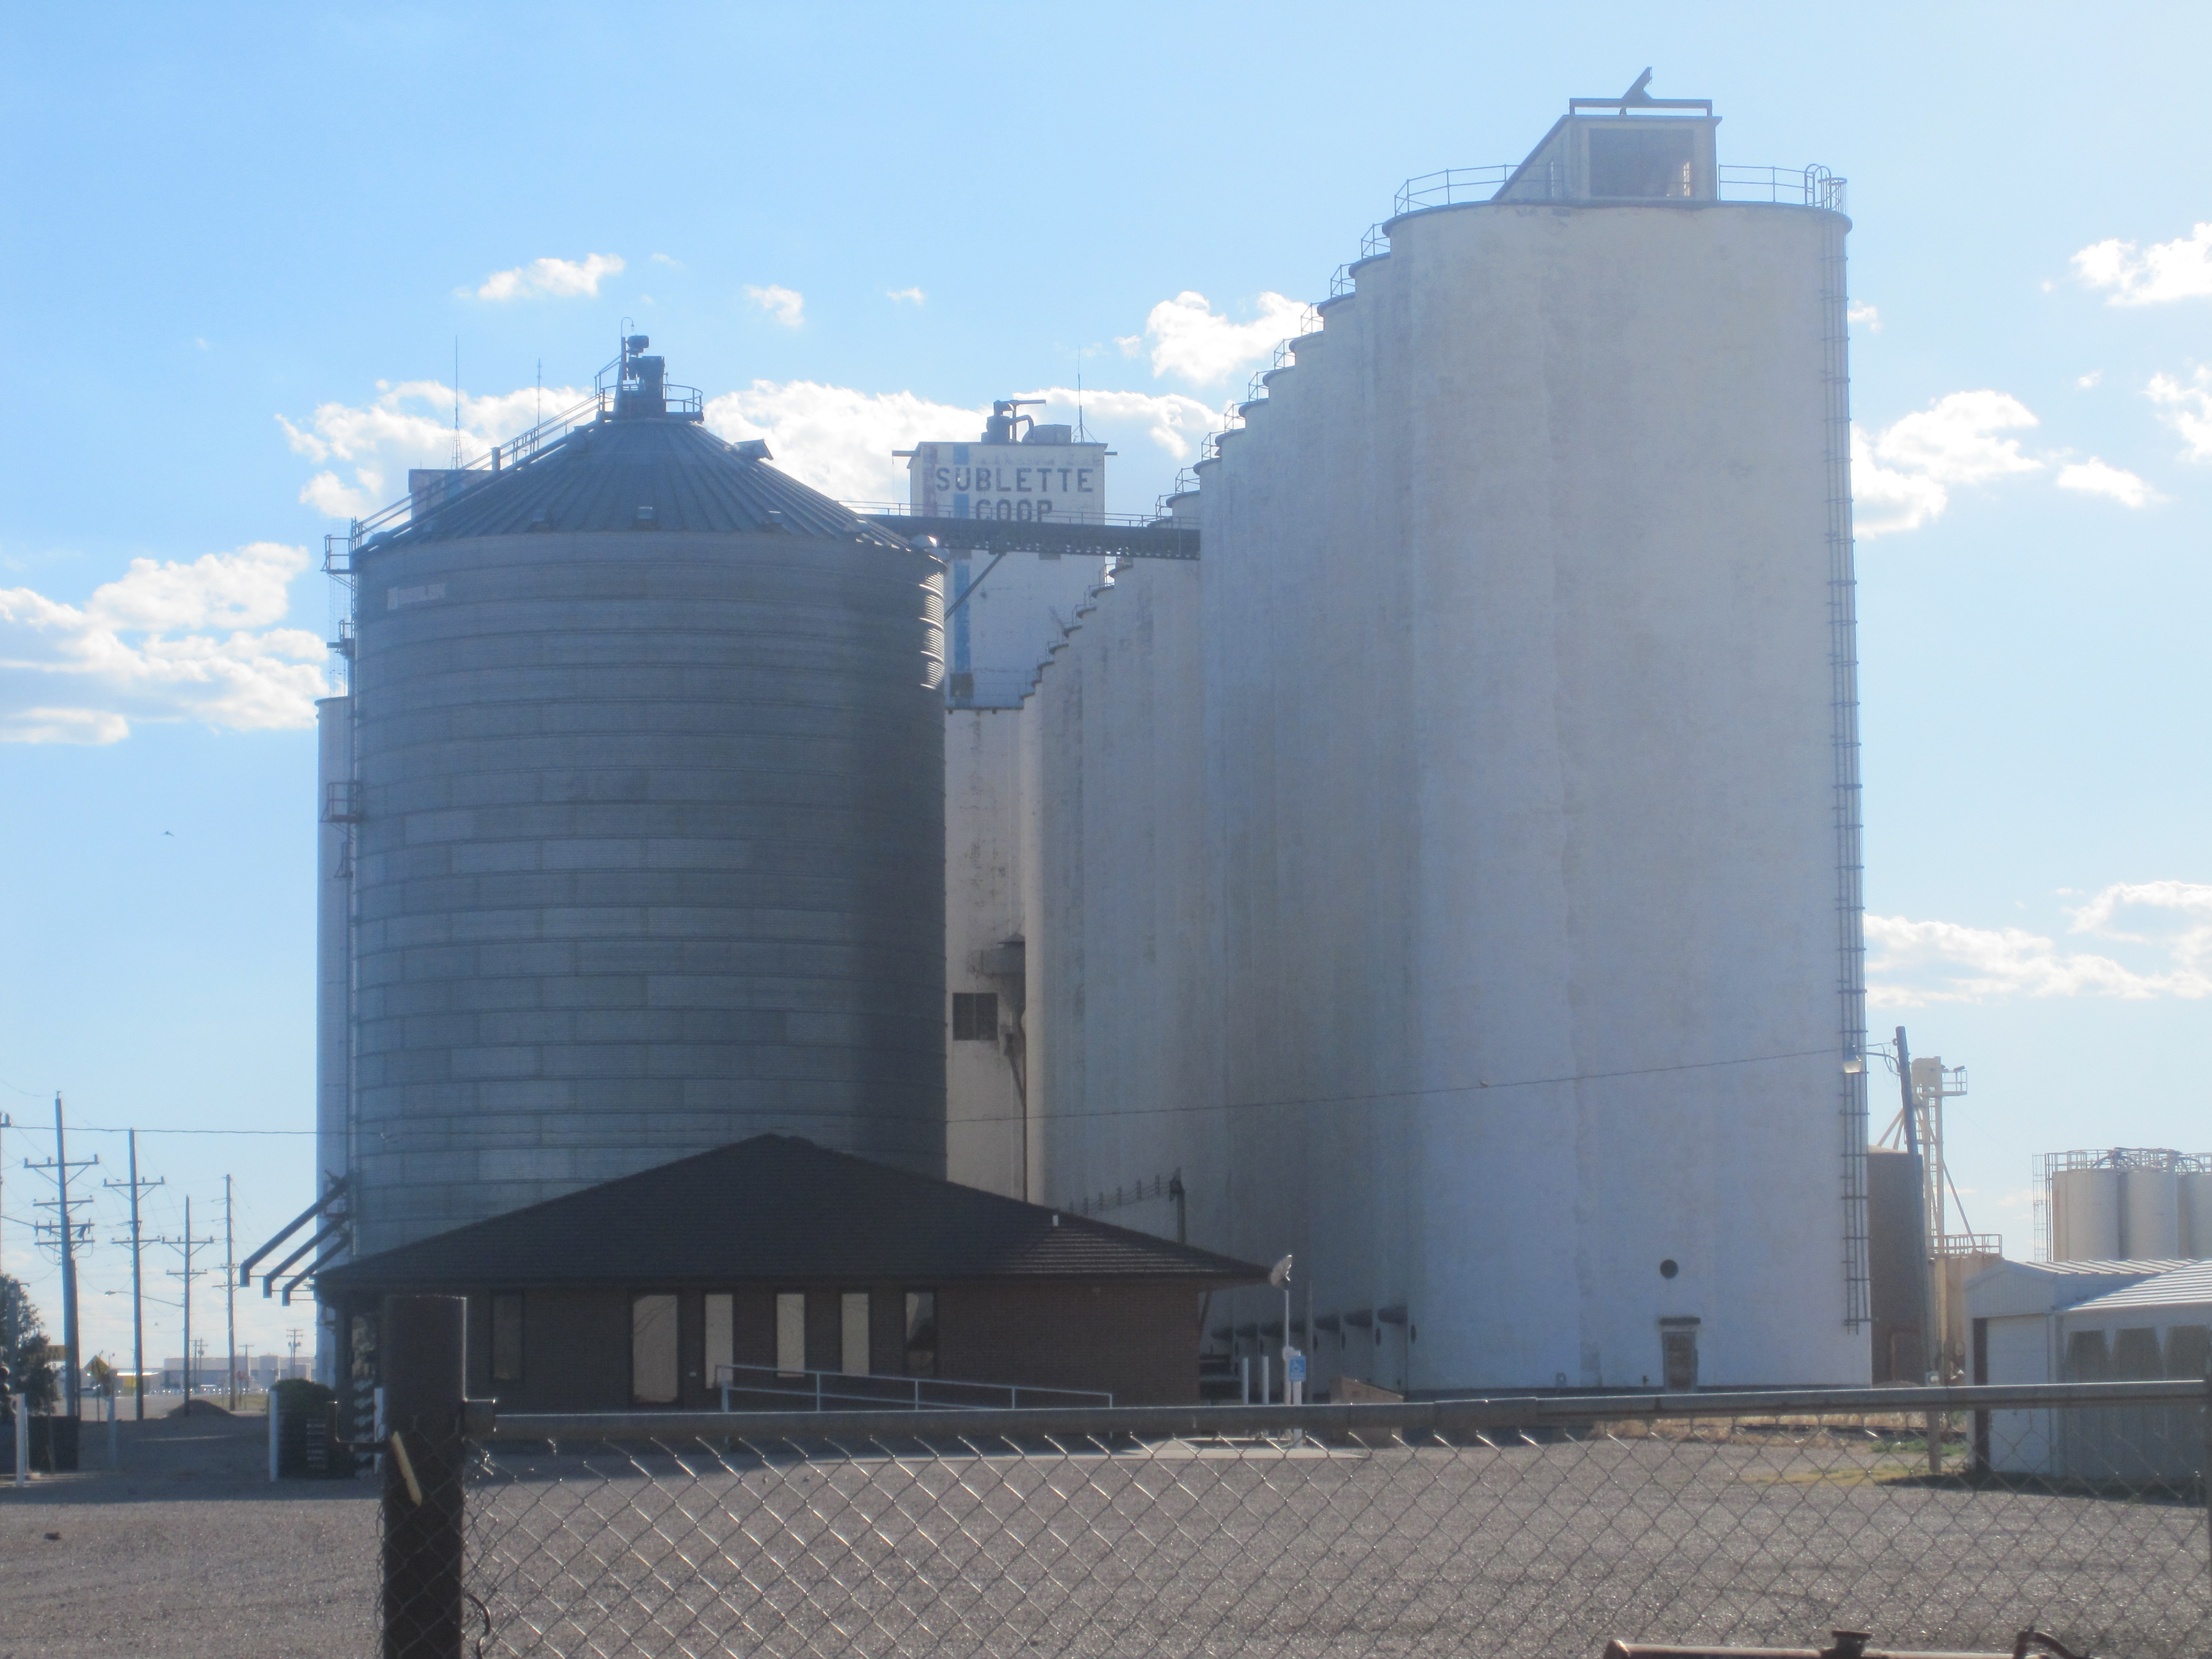 https://i1.wp.com/upload.wikimedia.org/wikipedia/commons/5/5f/Sublette,_KS_Co-op_grain_elevator_IMG_5967.JPG